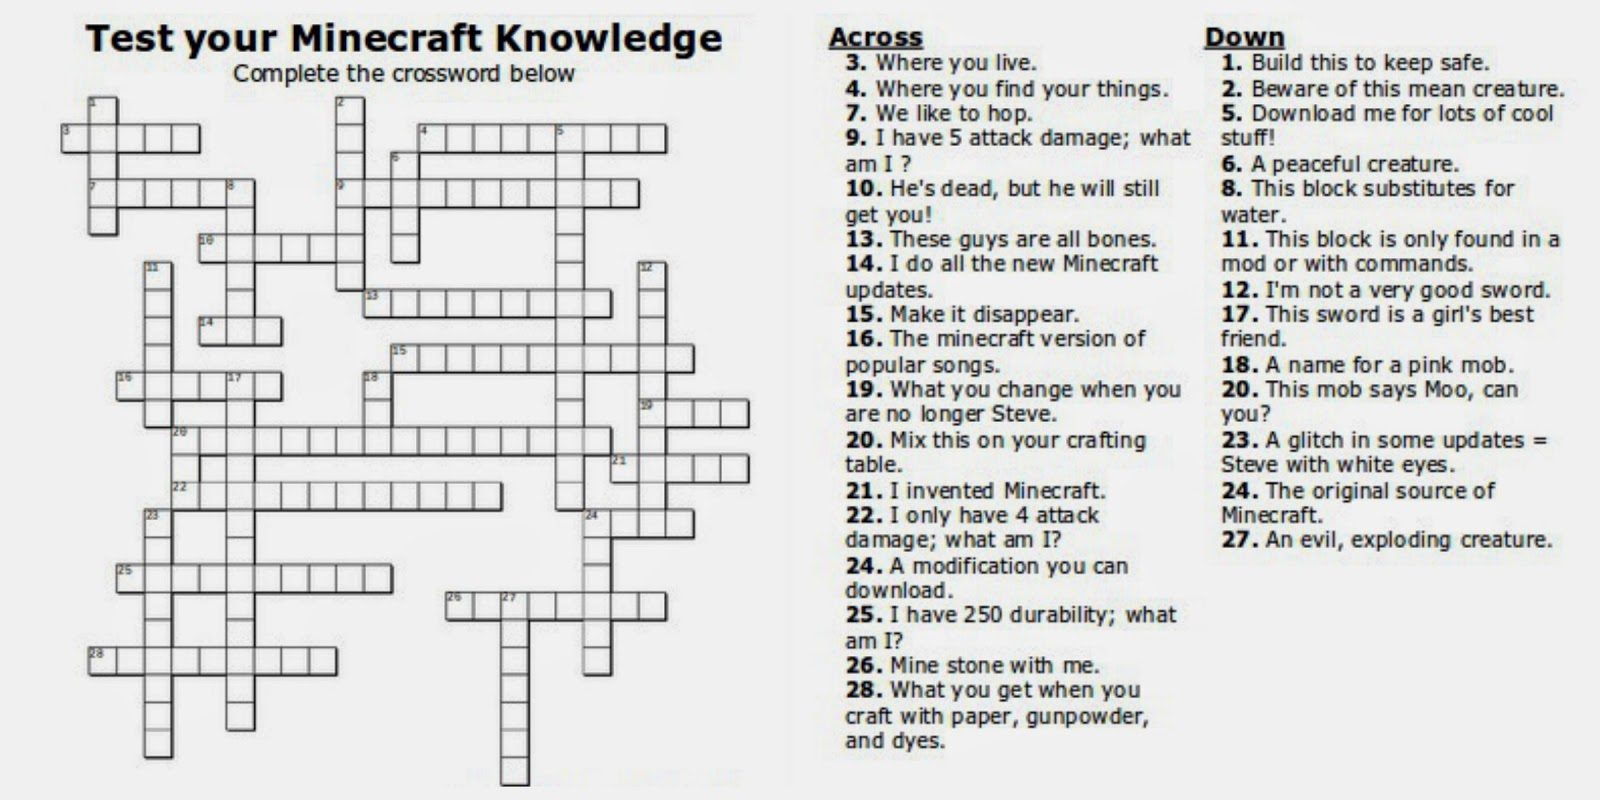 Free Printable Minecraft Crossword Search: Test Your Minecraft - Printable Quiz Crossword